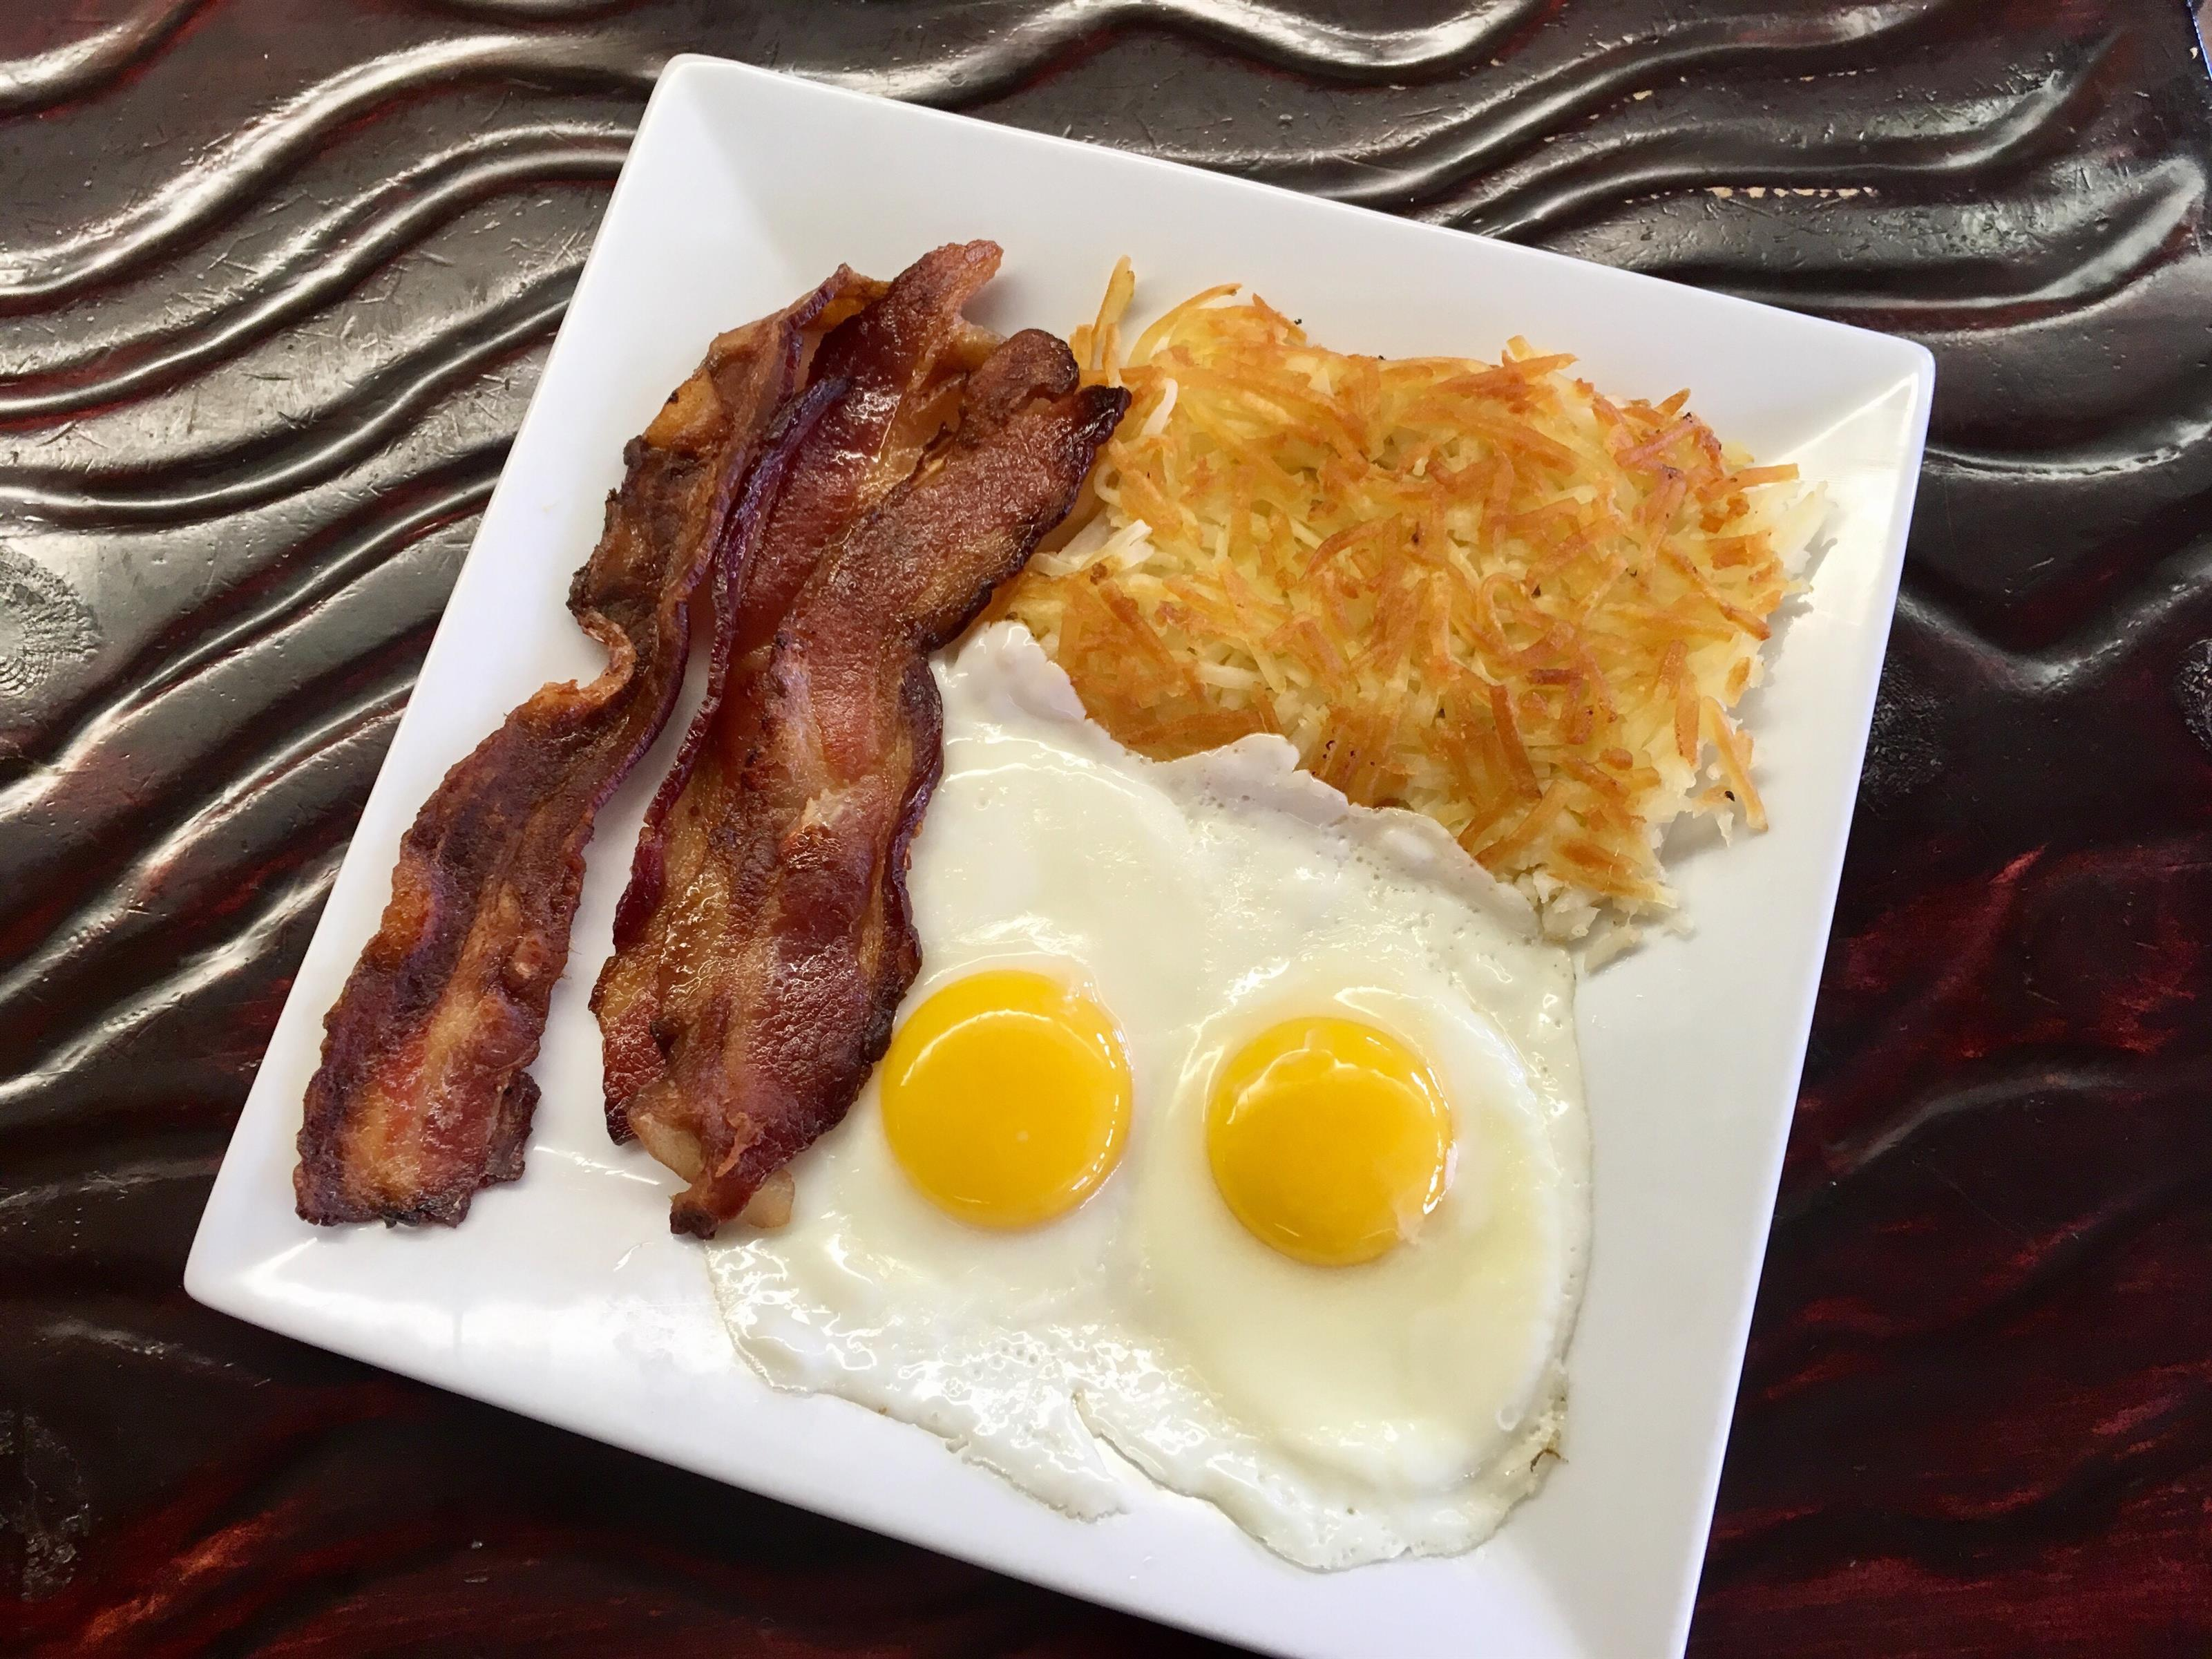 2 slices of bacon, 2 fried eggs and hashbrowns on a plate